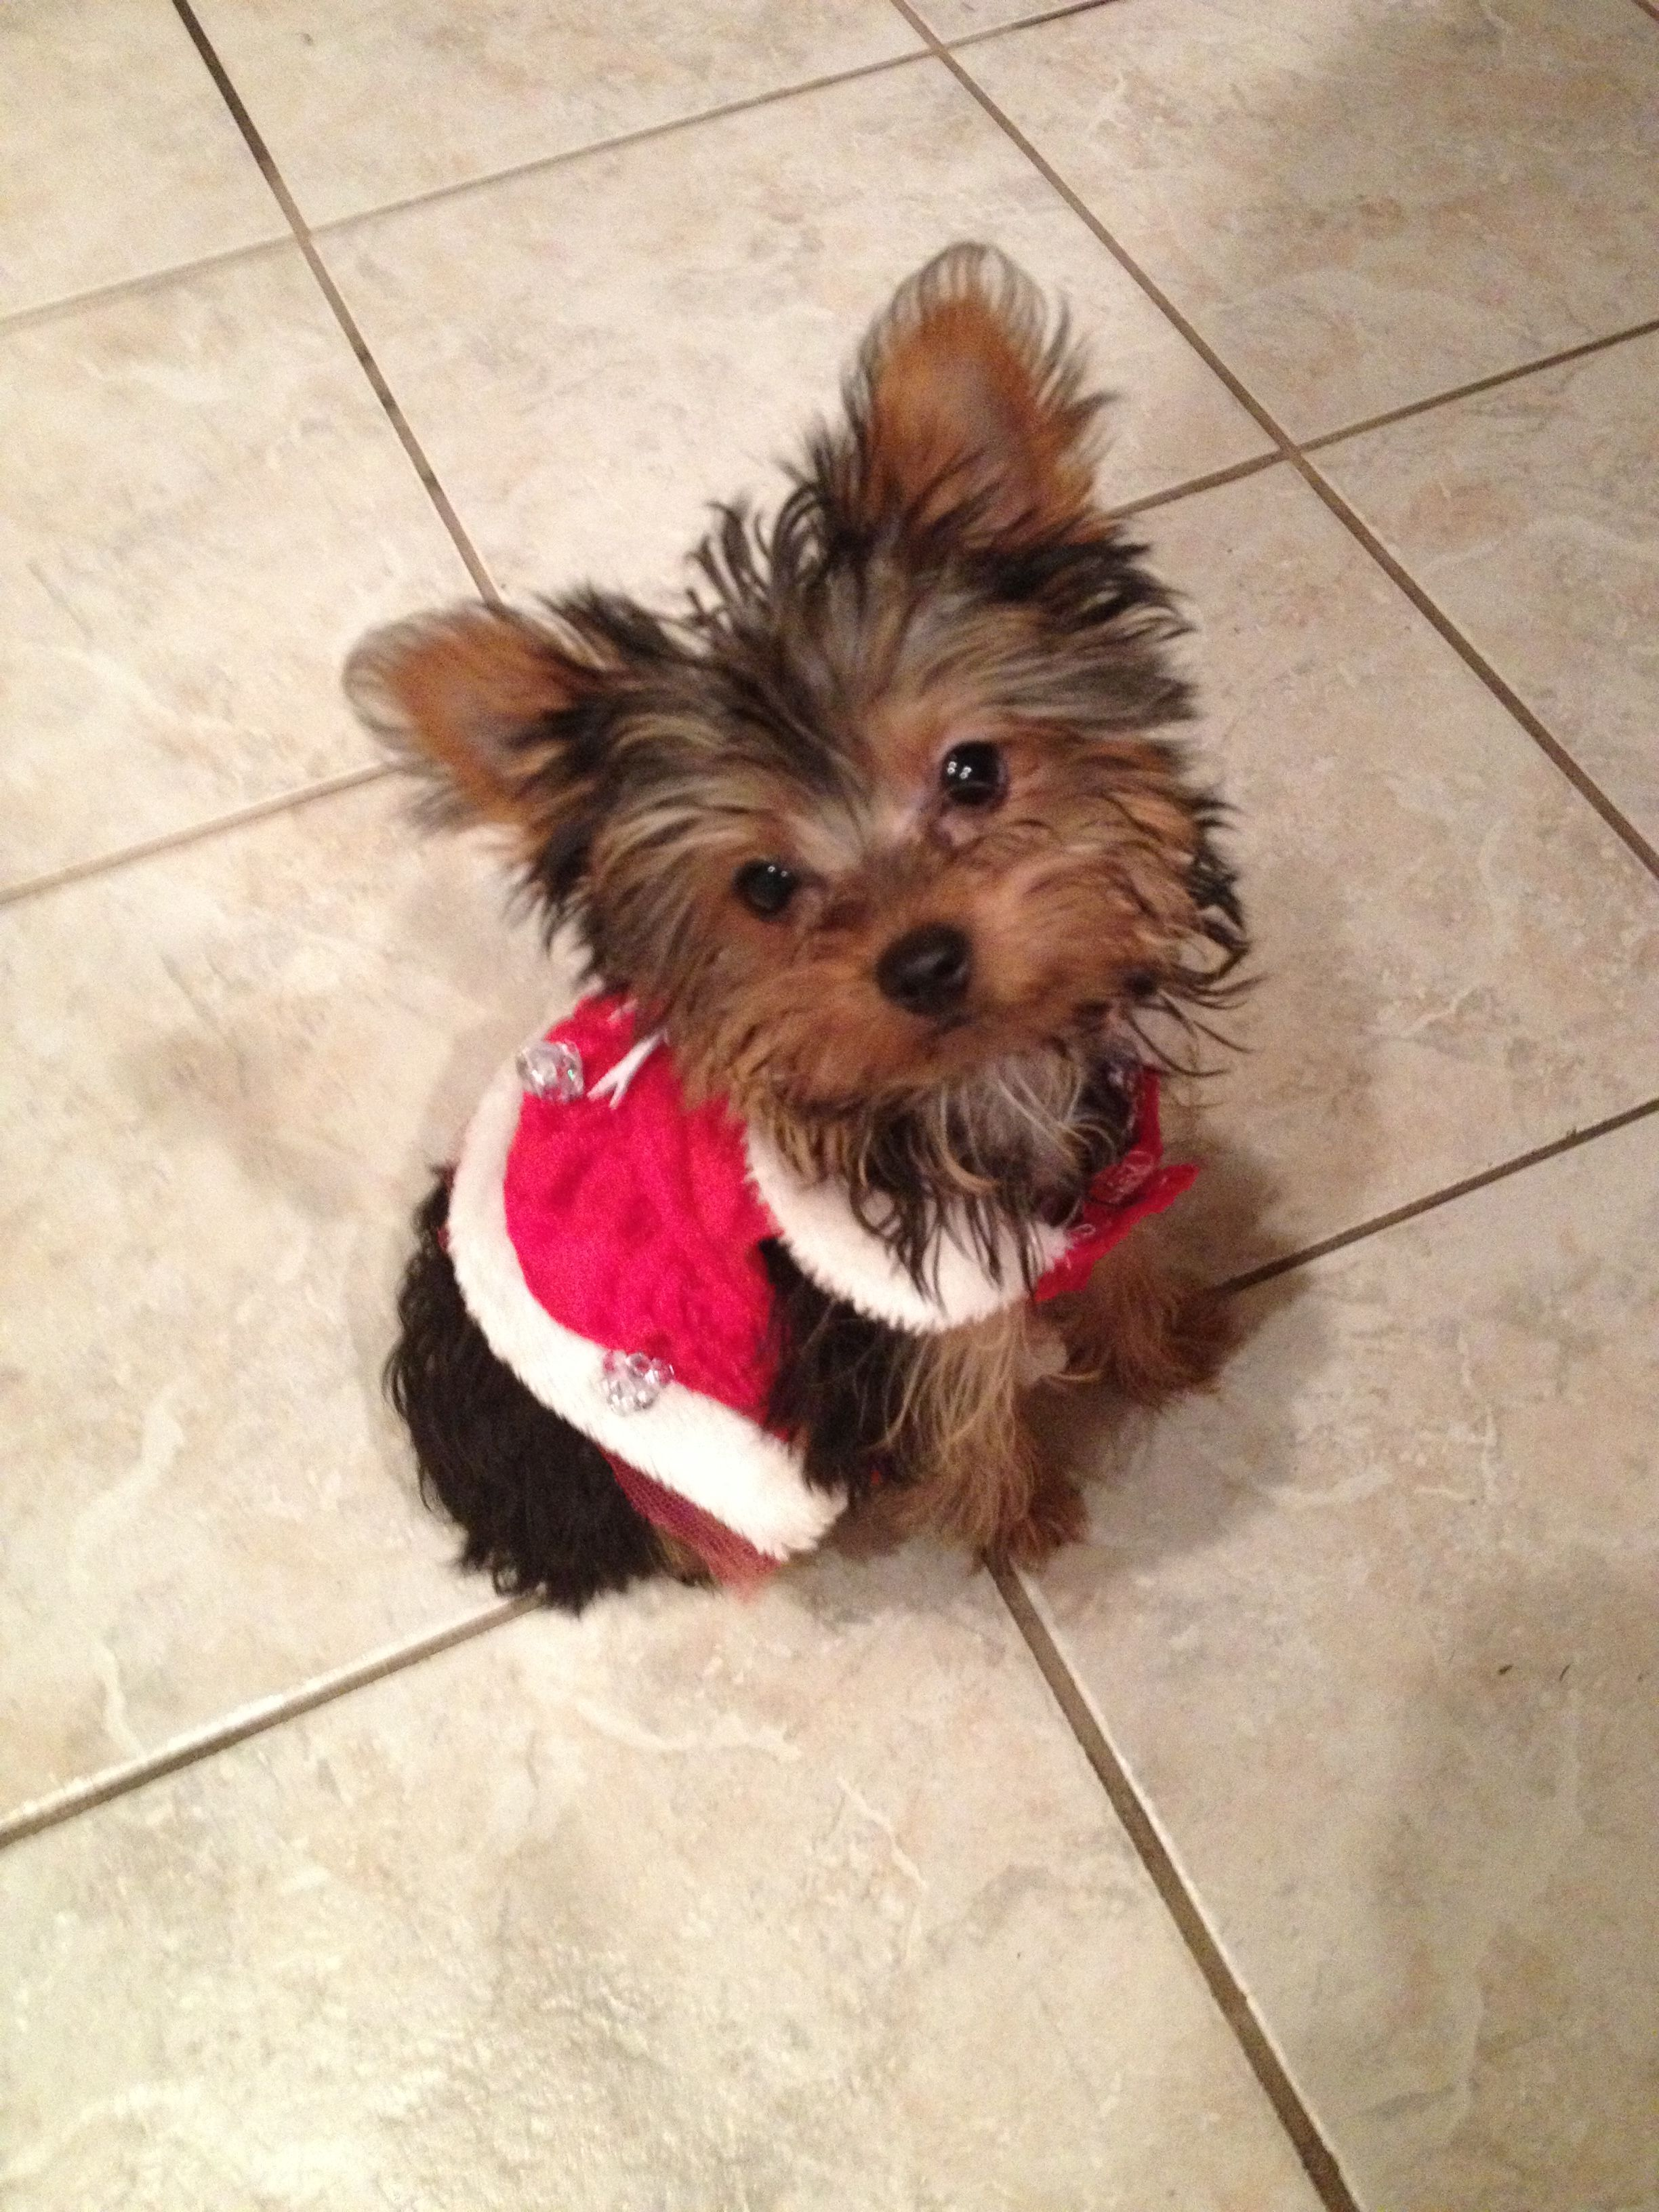 My Yorkie, Pyper, when she was a baby, all dressed up for